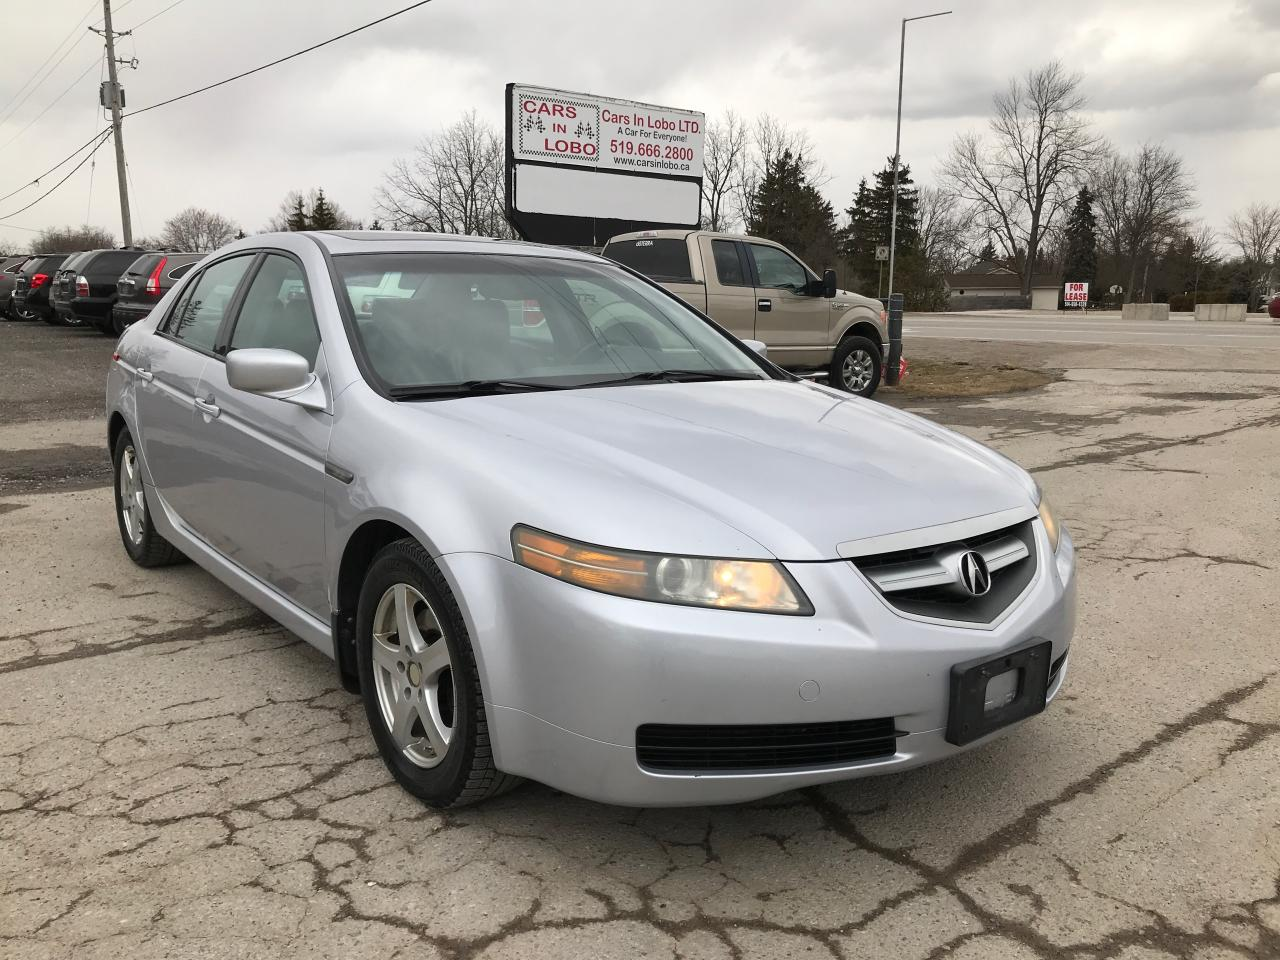 Used 2004 Acura TL for Sale in Komoka, Ontario   Carpages.ca